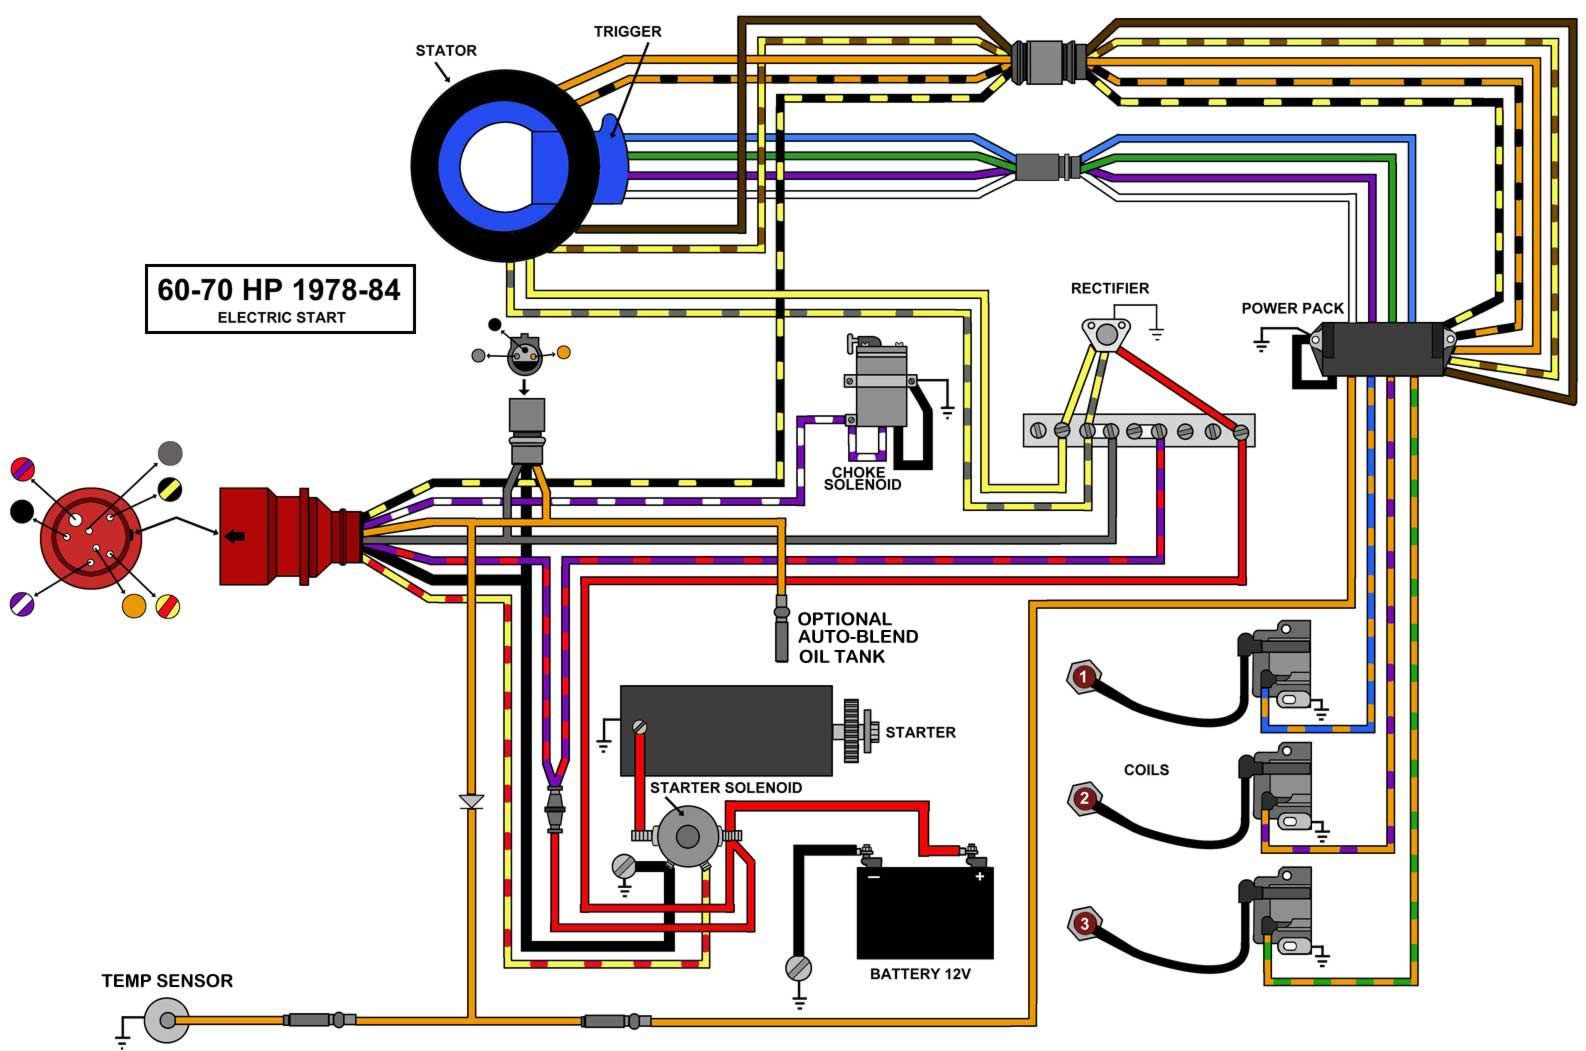 Oil Injector Wiring Diagram Johnson Libraries For A 1996 Ford F 350 73 Dfi Diagrams Libraryimage Result 70 Hp 1988 To Tachometer